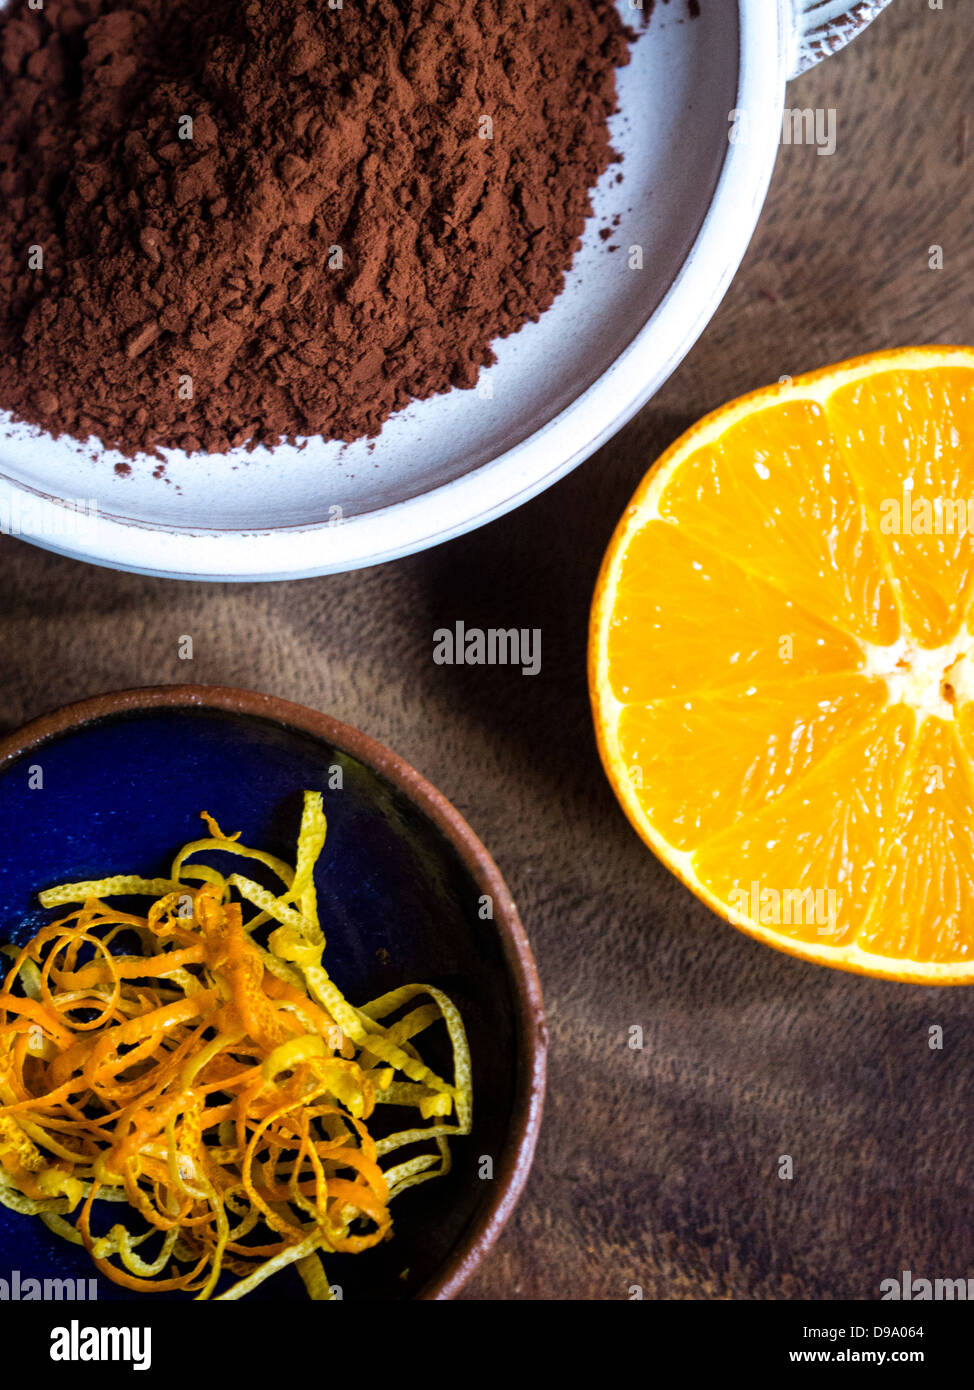 cocoa powder, lemon and orange zest strips, and a half orange showing delicious combination of flavours - Stock Image